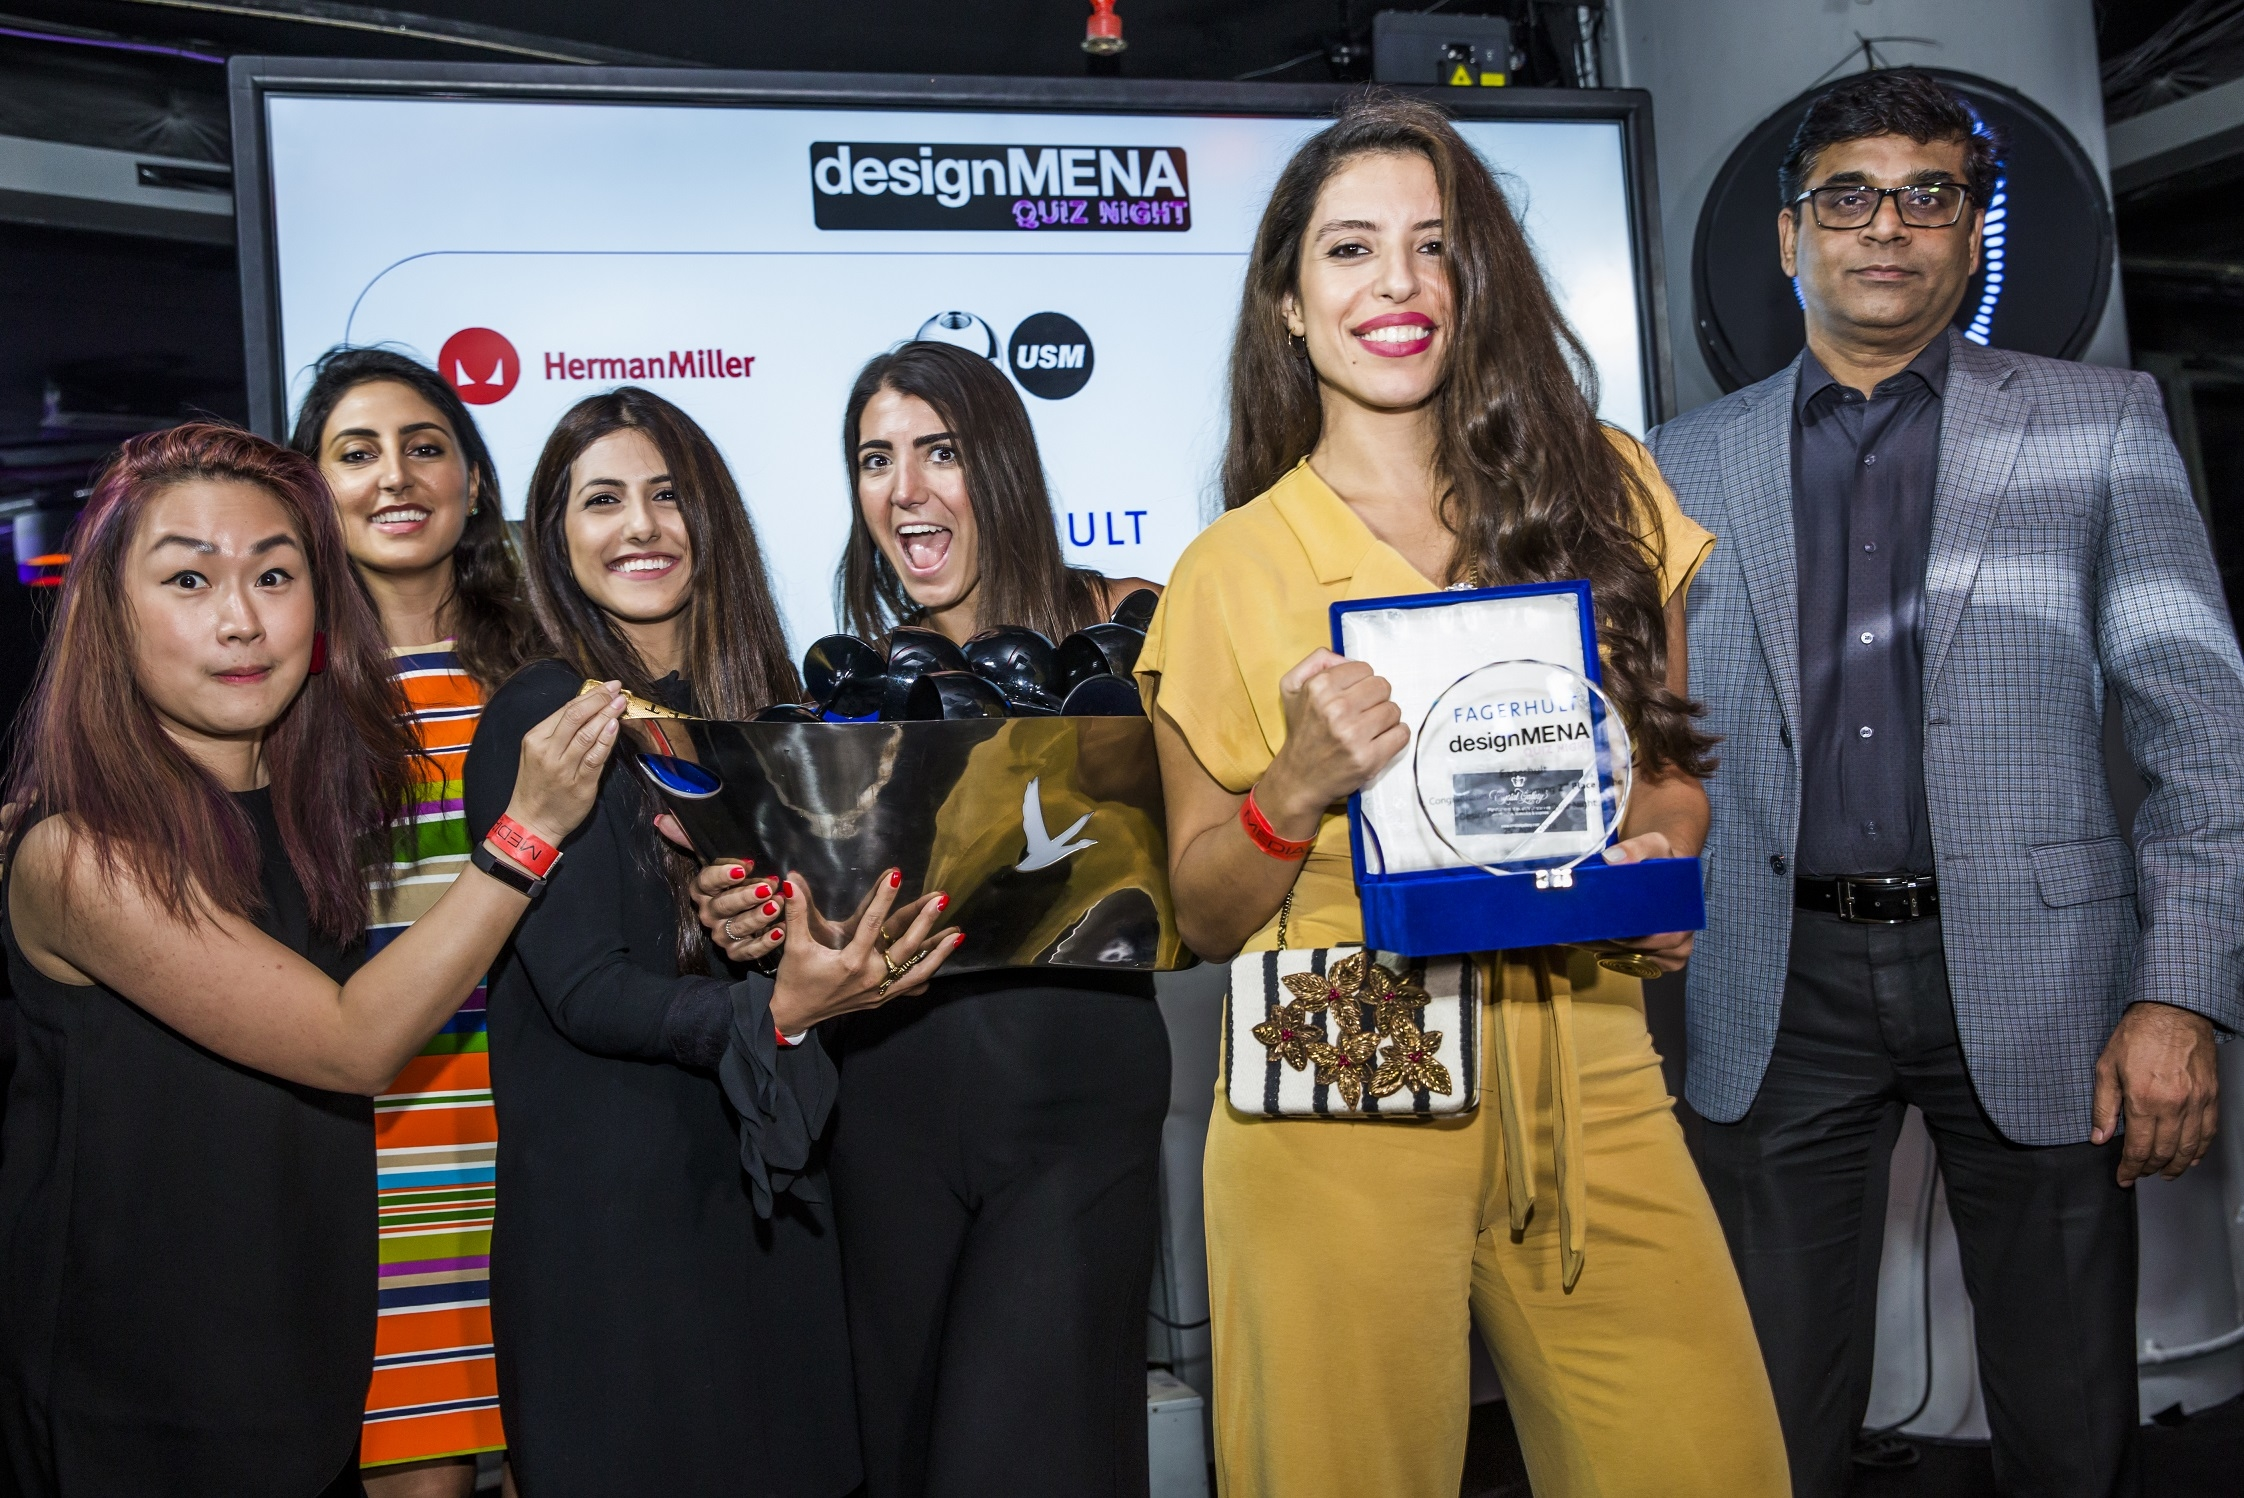 DesignMena Quiz Night 2019